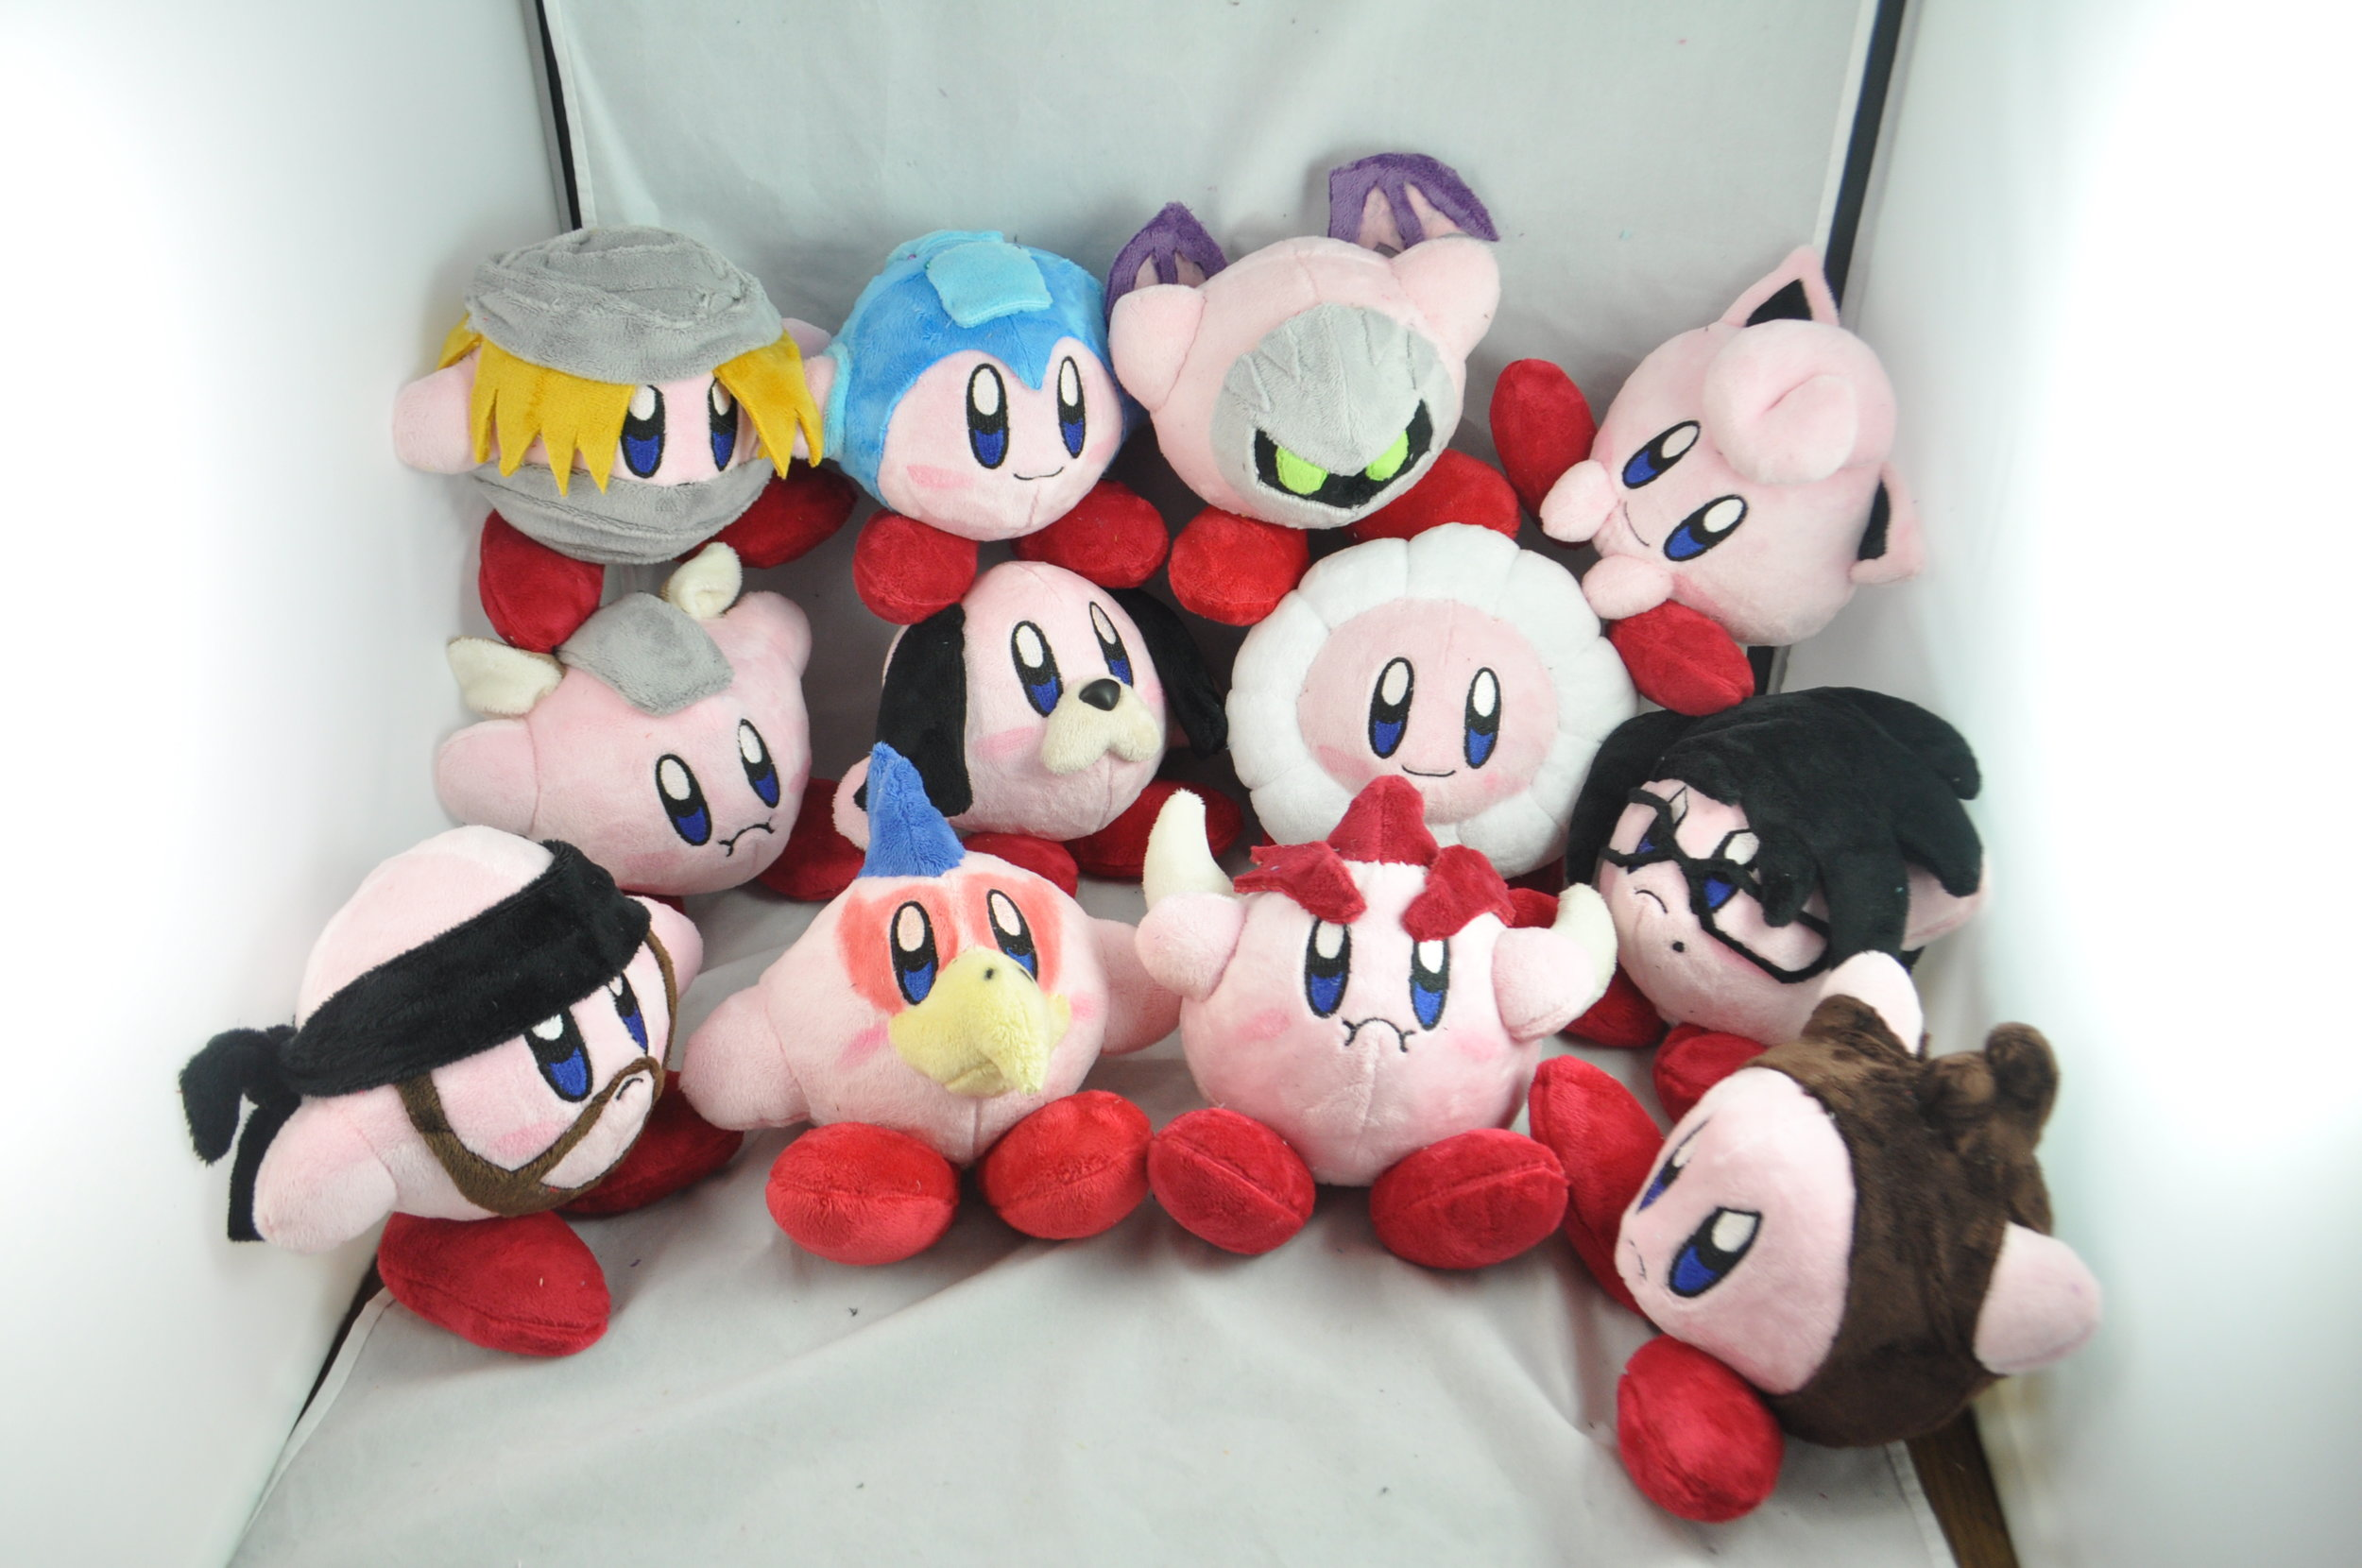 Kirby with copy abilities